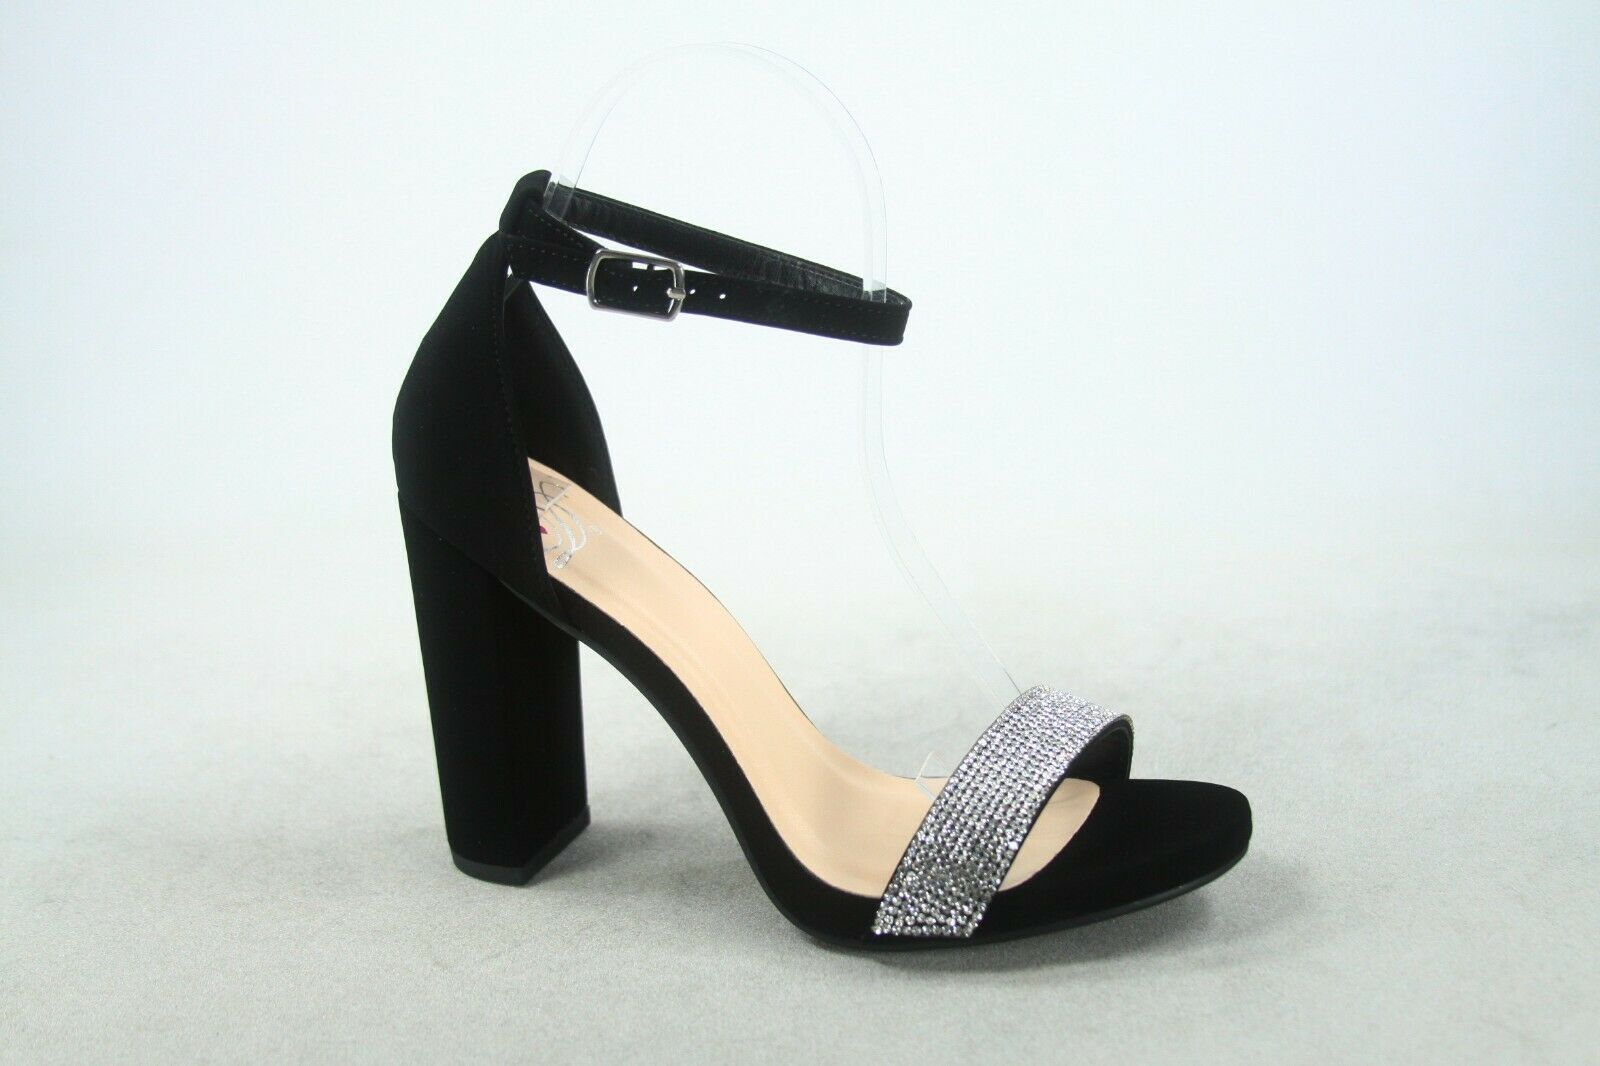 3a64a792082cb NEW Women's Color Open Toe Ankle Strap Chunky Heel Dress Sandal Size 5.5 -  11